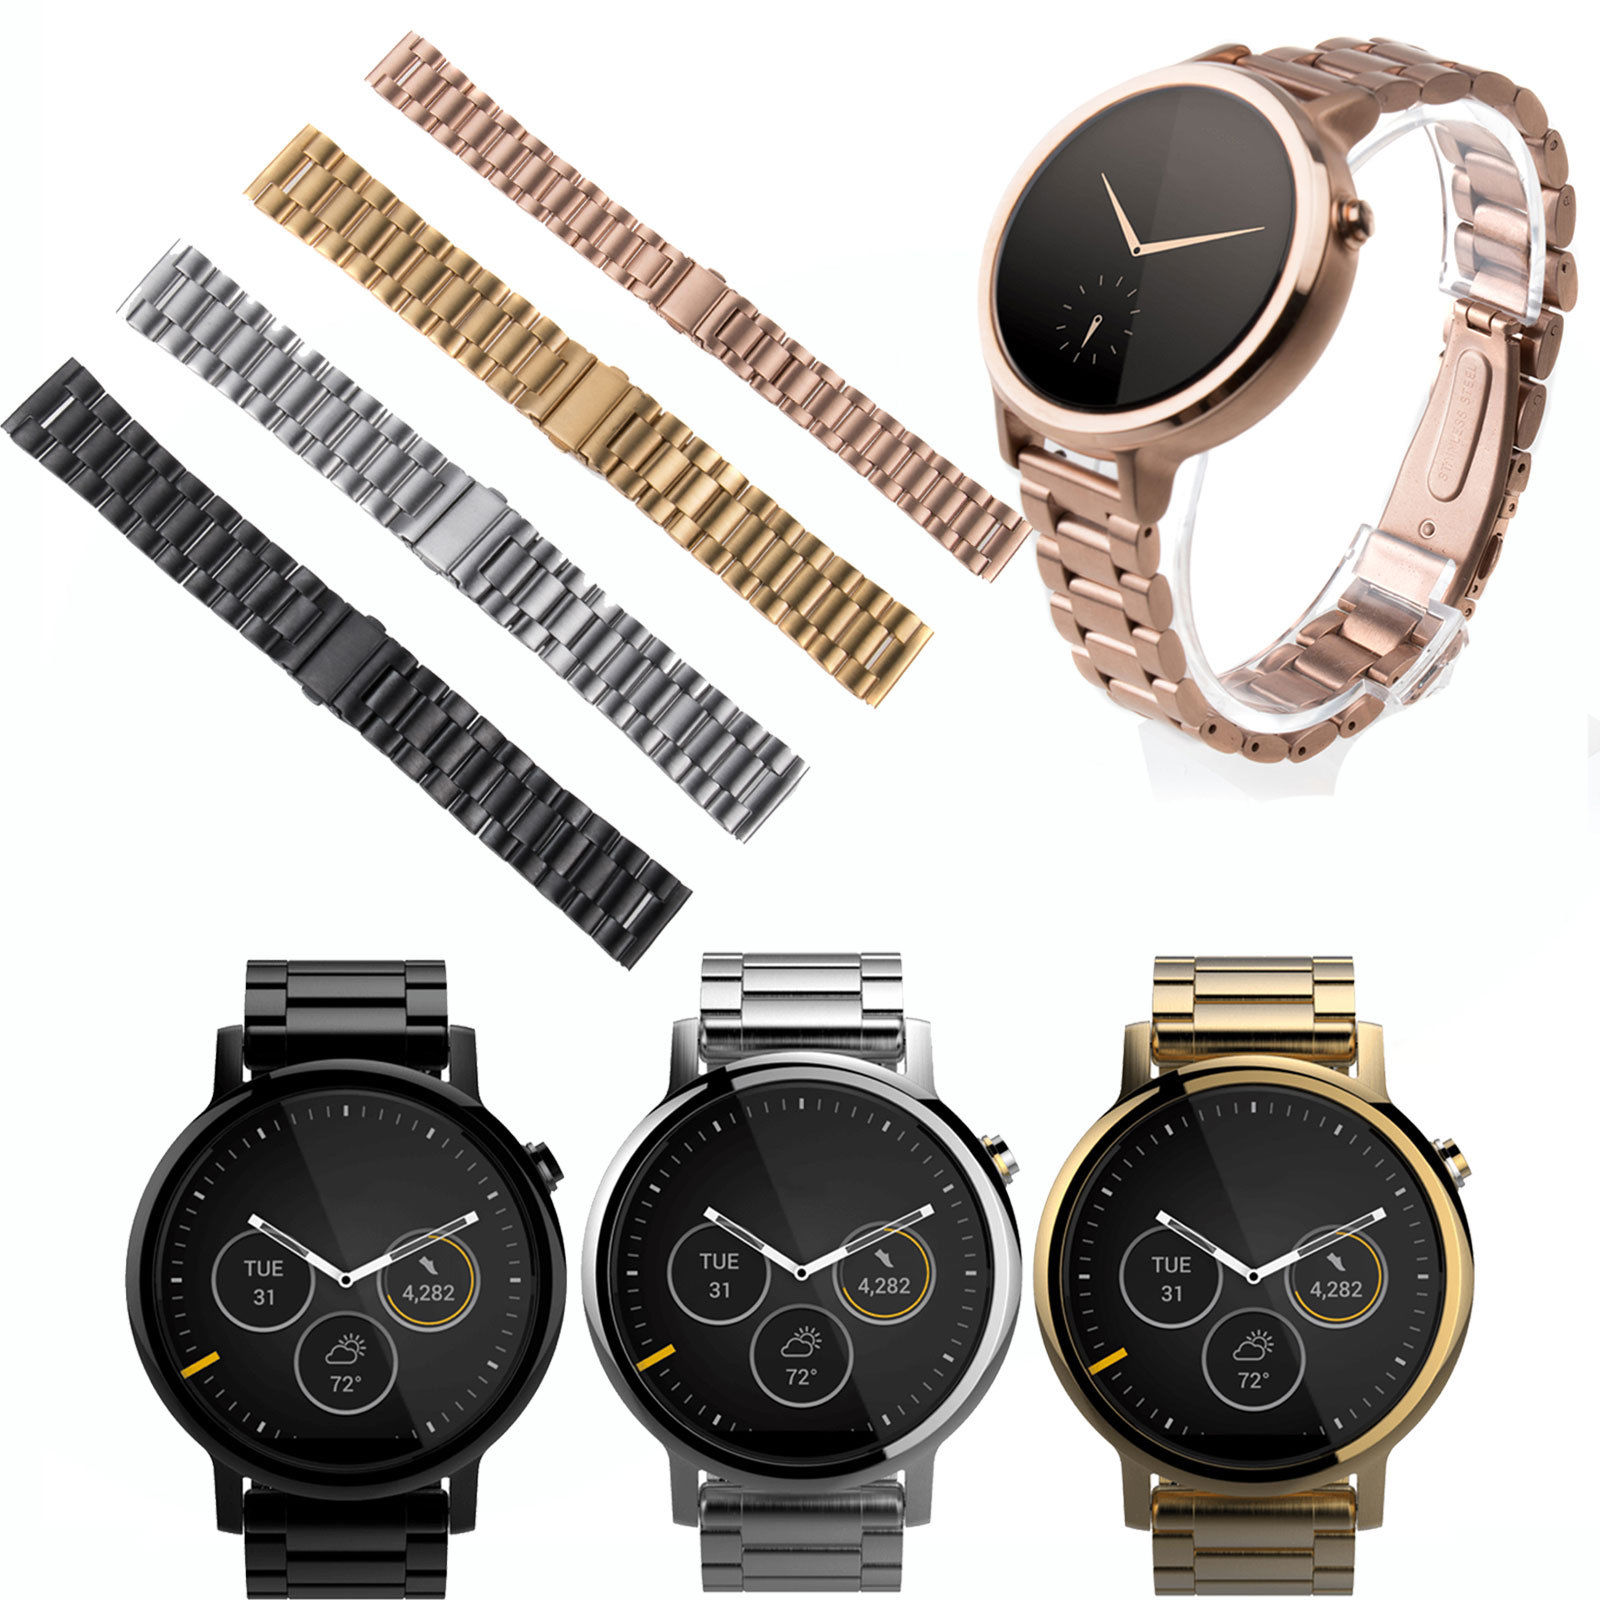 16mm 20mm 22mm Stainless Steel Watch Band for Motorola Moto 360 2nd Women 42mm Men 46mm 42mm Smart Watch Bracelet Strap +Tool stainless steel watch band strap for moto motorola 360 smart watch black silver watchband women men lady male